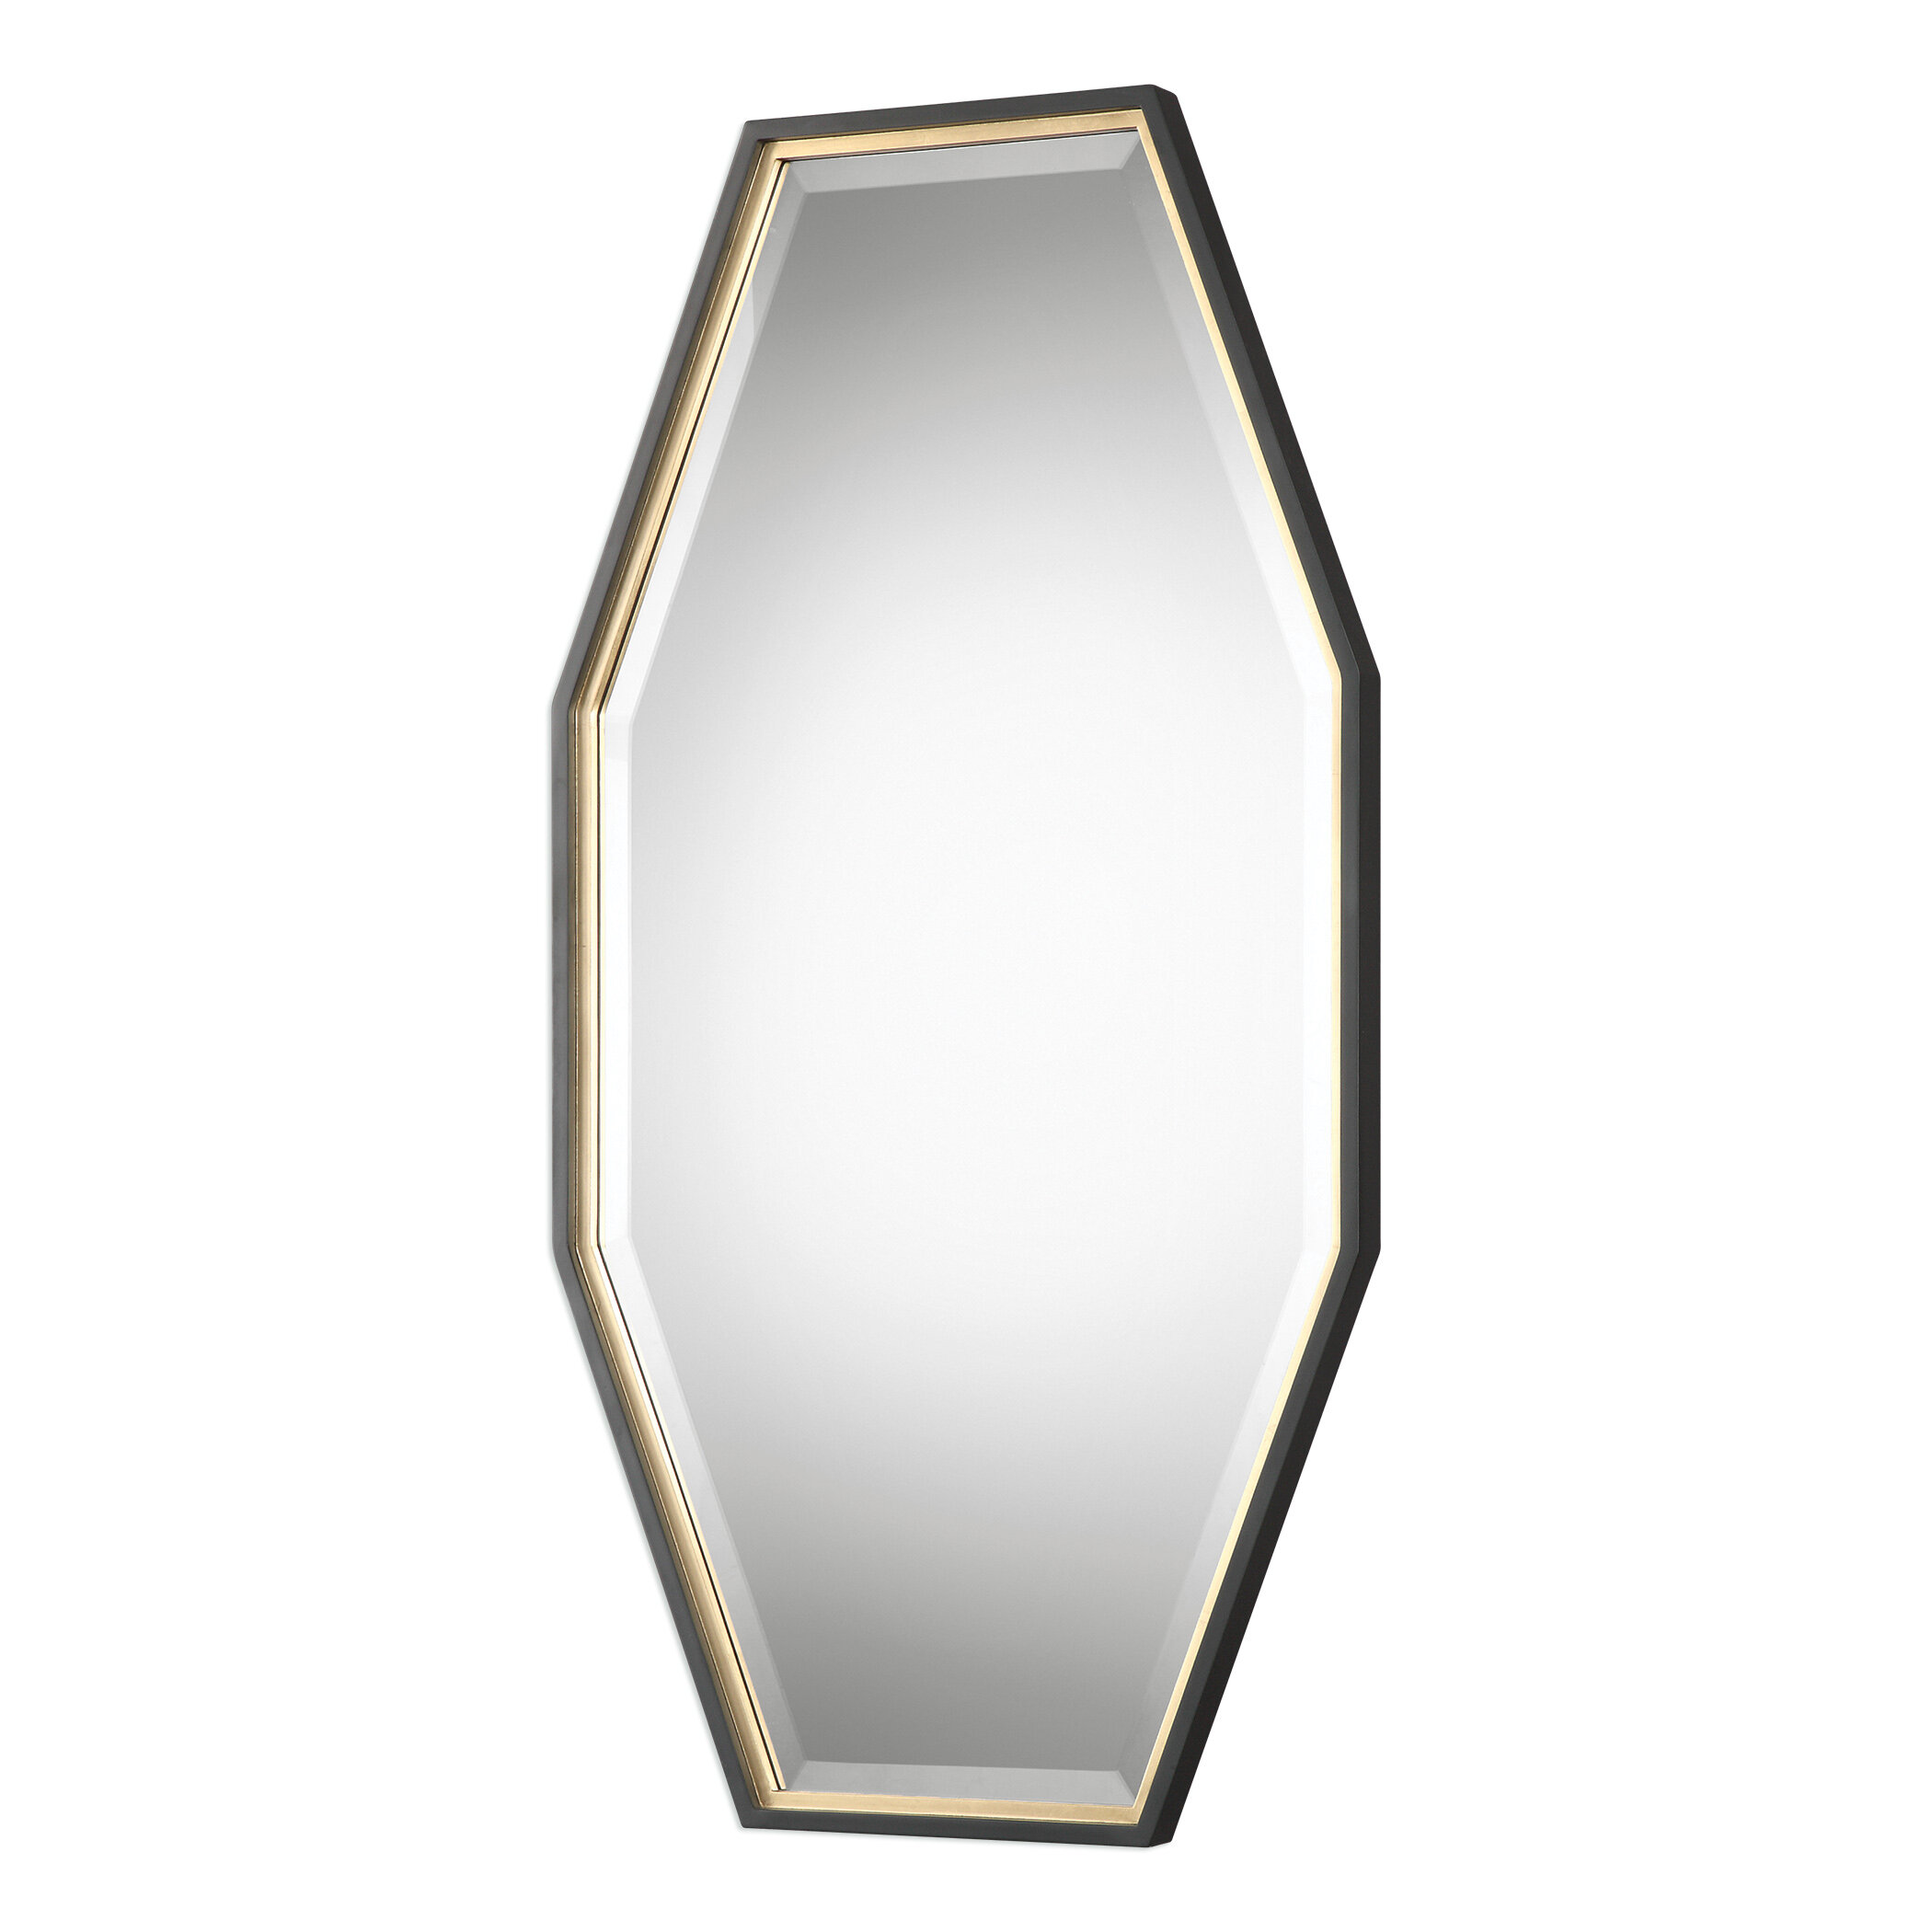 George Oliver Wall Mirrors You Ll Love In 2021 Wayfair